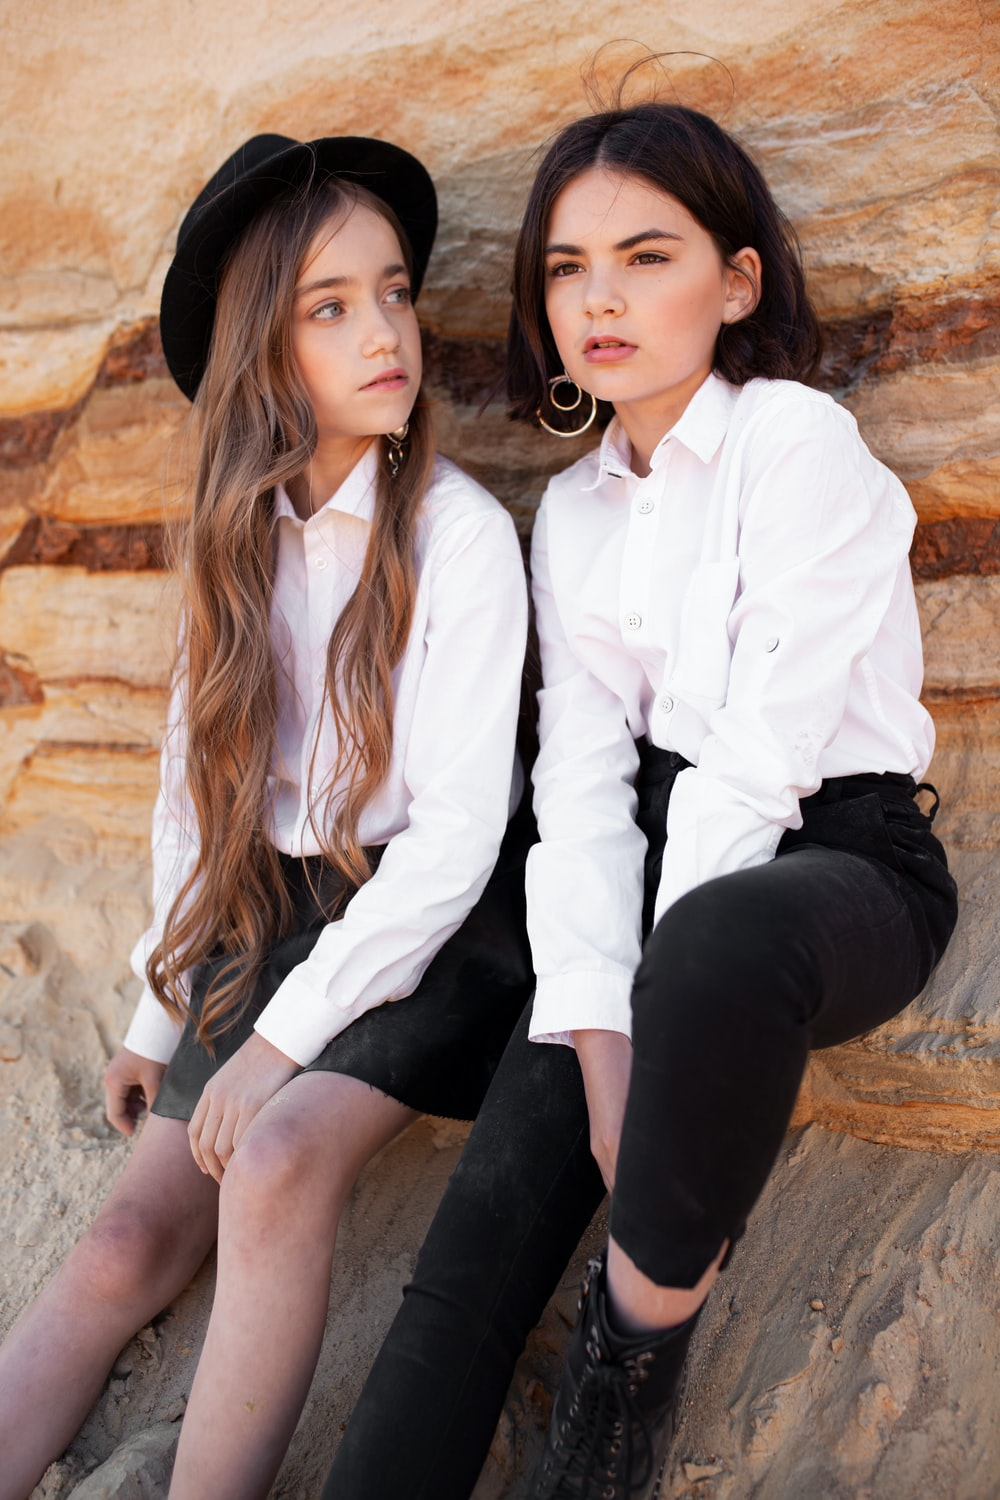 2 women in white dress shirt and black pants sitting on brown rock